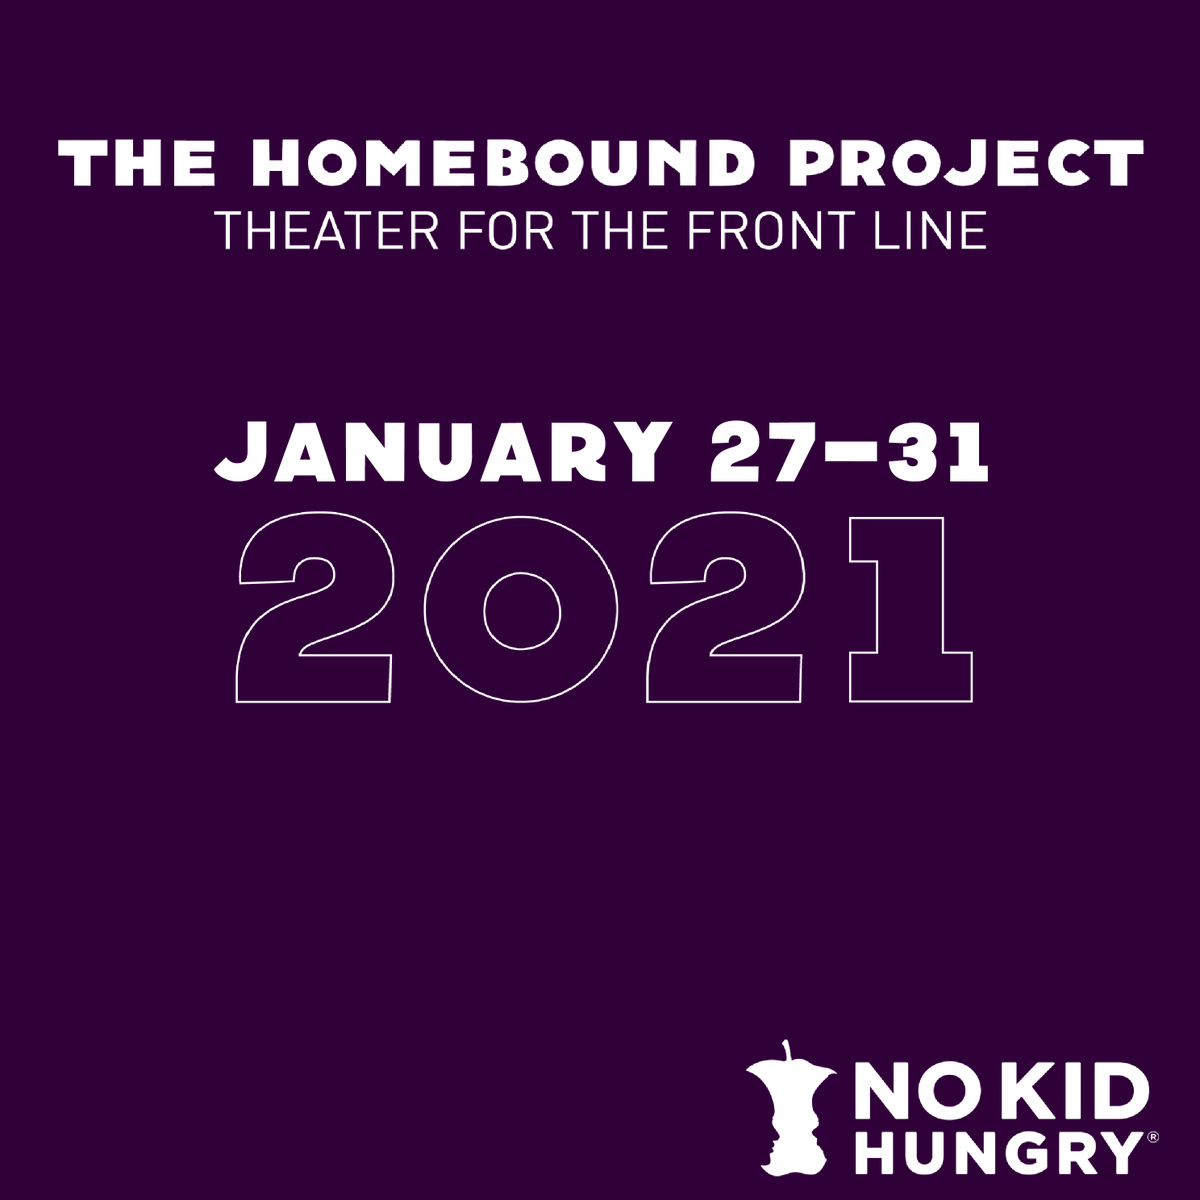 Join #TheHomeboundProject for their special sixth series of original, view-at-home theater benefitting #NoKidHungry! Check it out and get your tickets today. 🎭